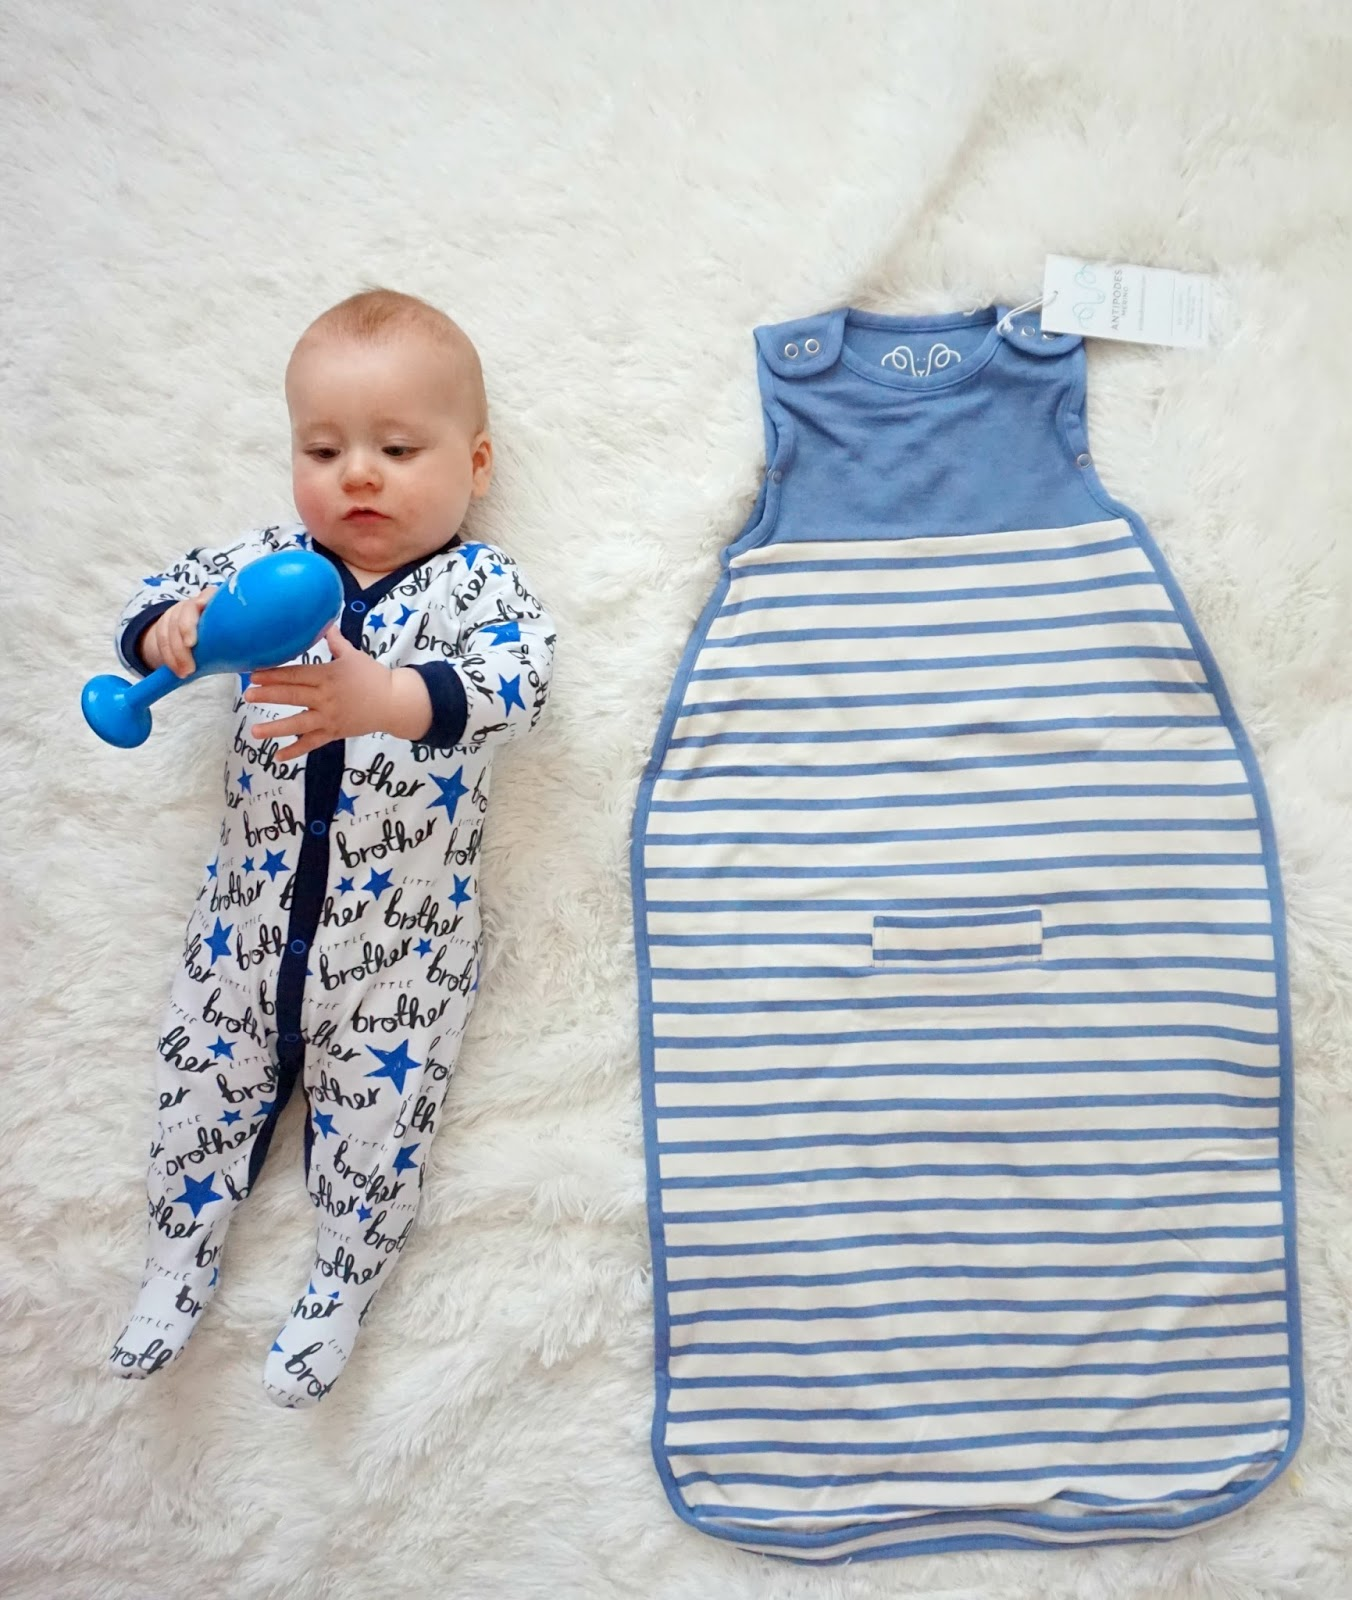 The Sleeping Bag Also Has A Seat Belt Slot Which Is Perfect For Transferring Baby From Crib To Car Or Pram